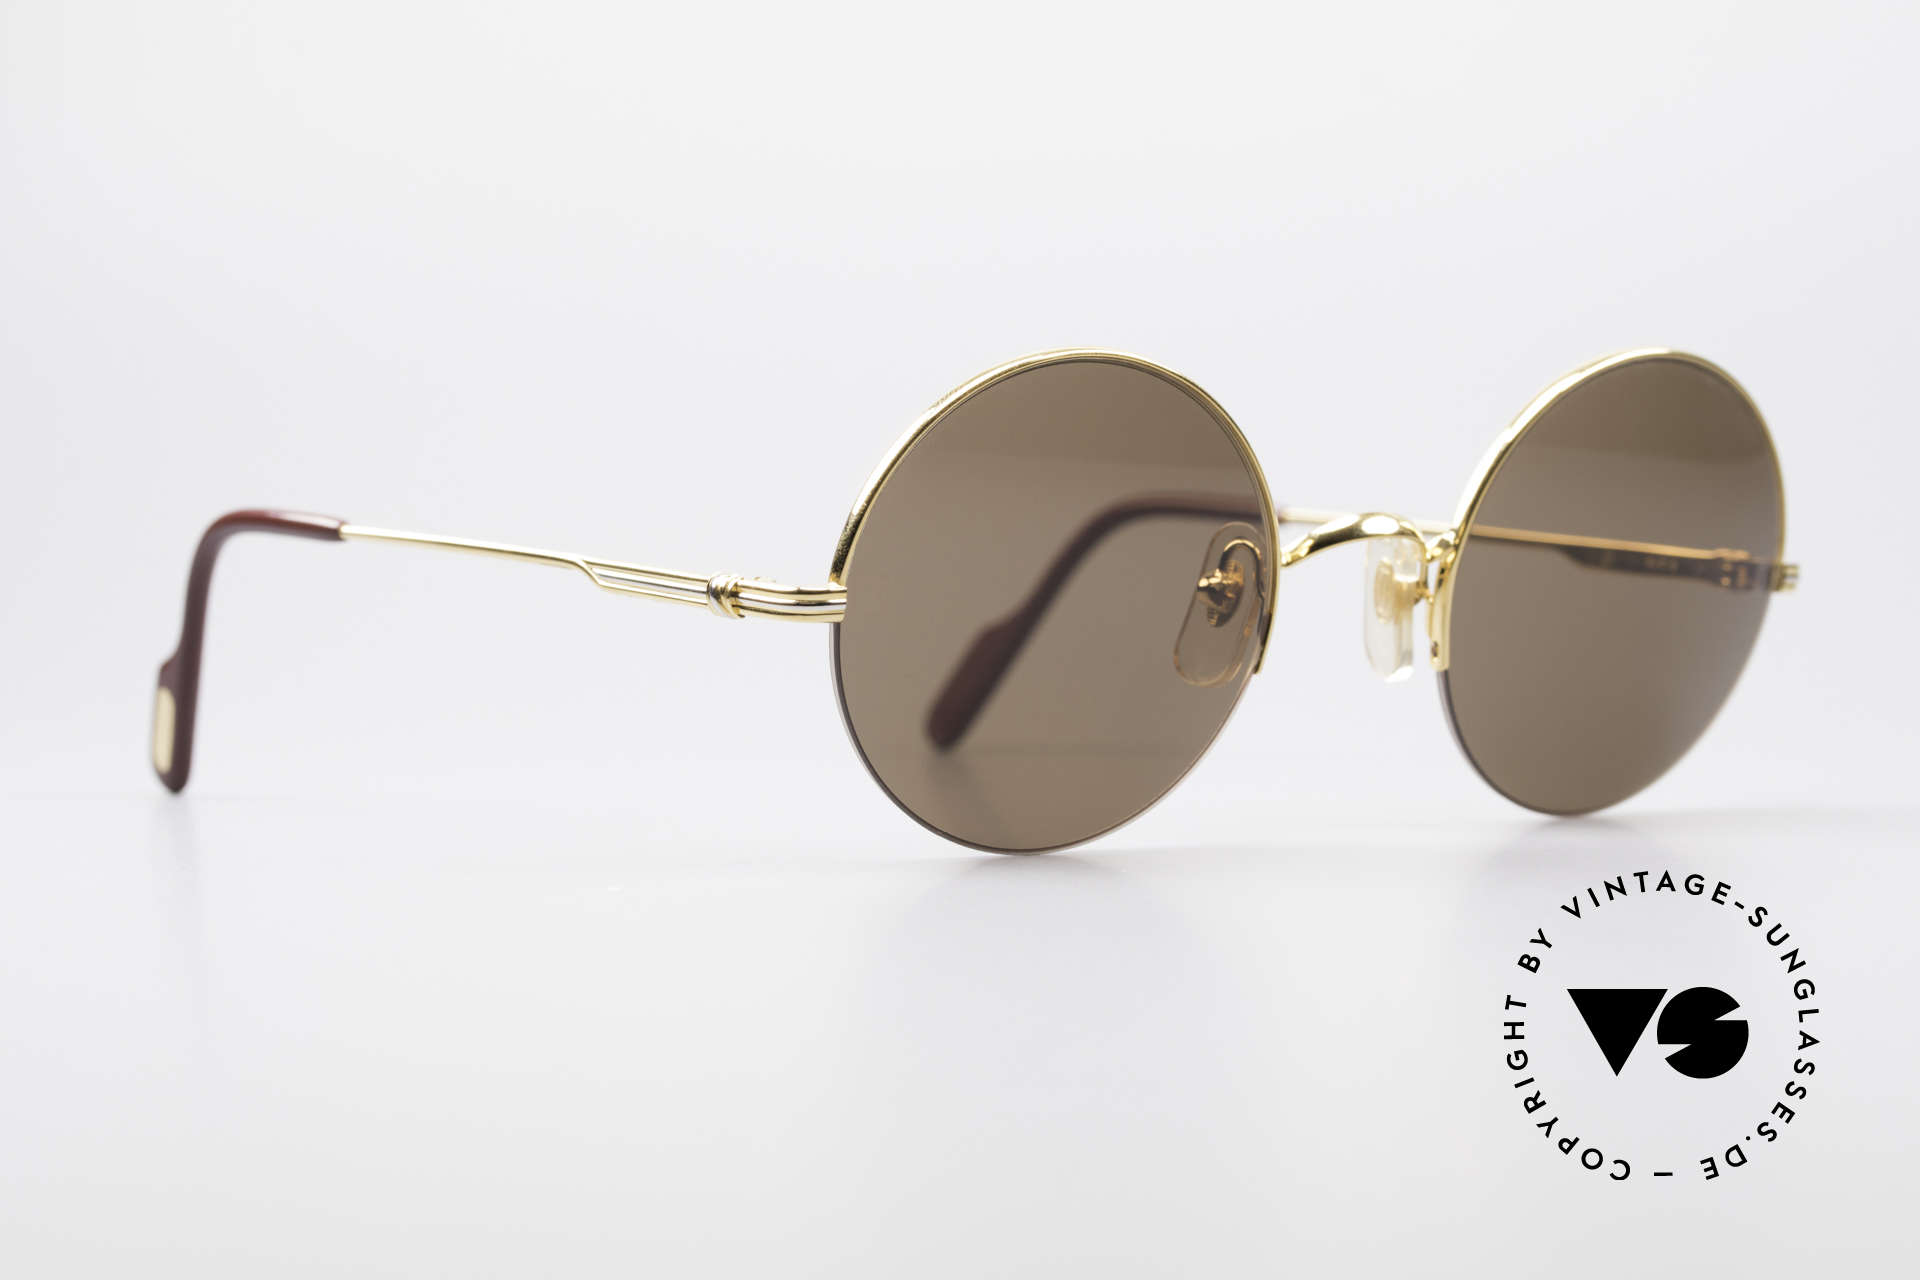 Cartier Mayfair - M Luxury Round Sunglasses, exclusive design - simply timeless and unisex, Made for Men and Women